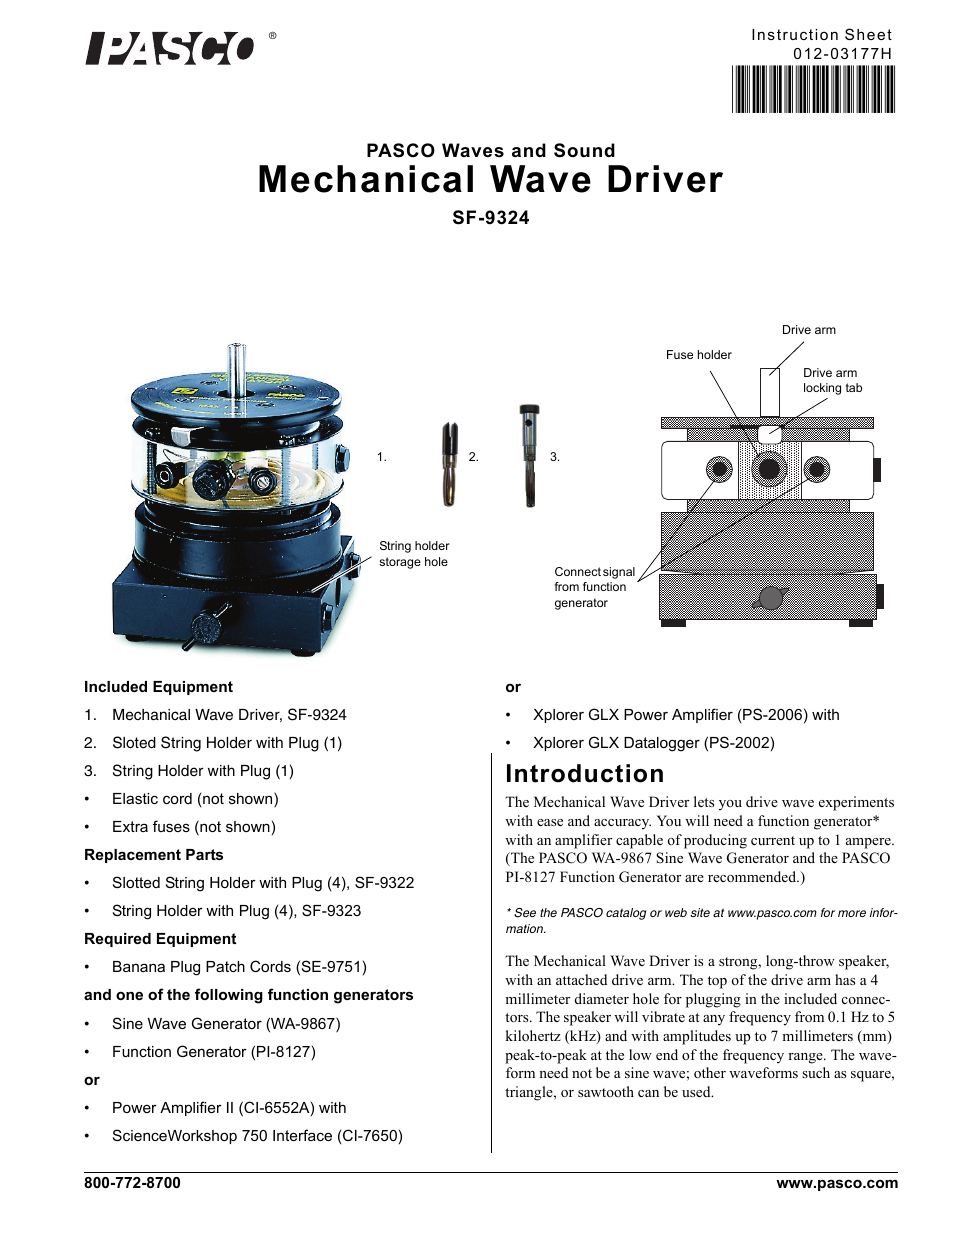 PASCO SF-9324 Mechanical Wave Driver User Manual | 4 pages